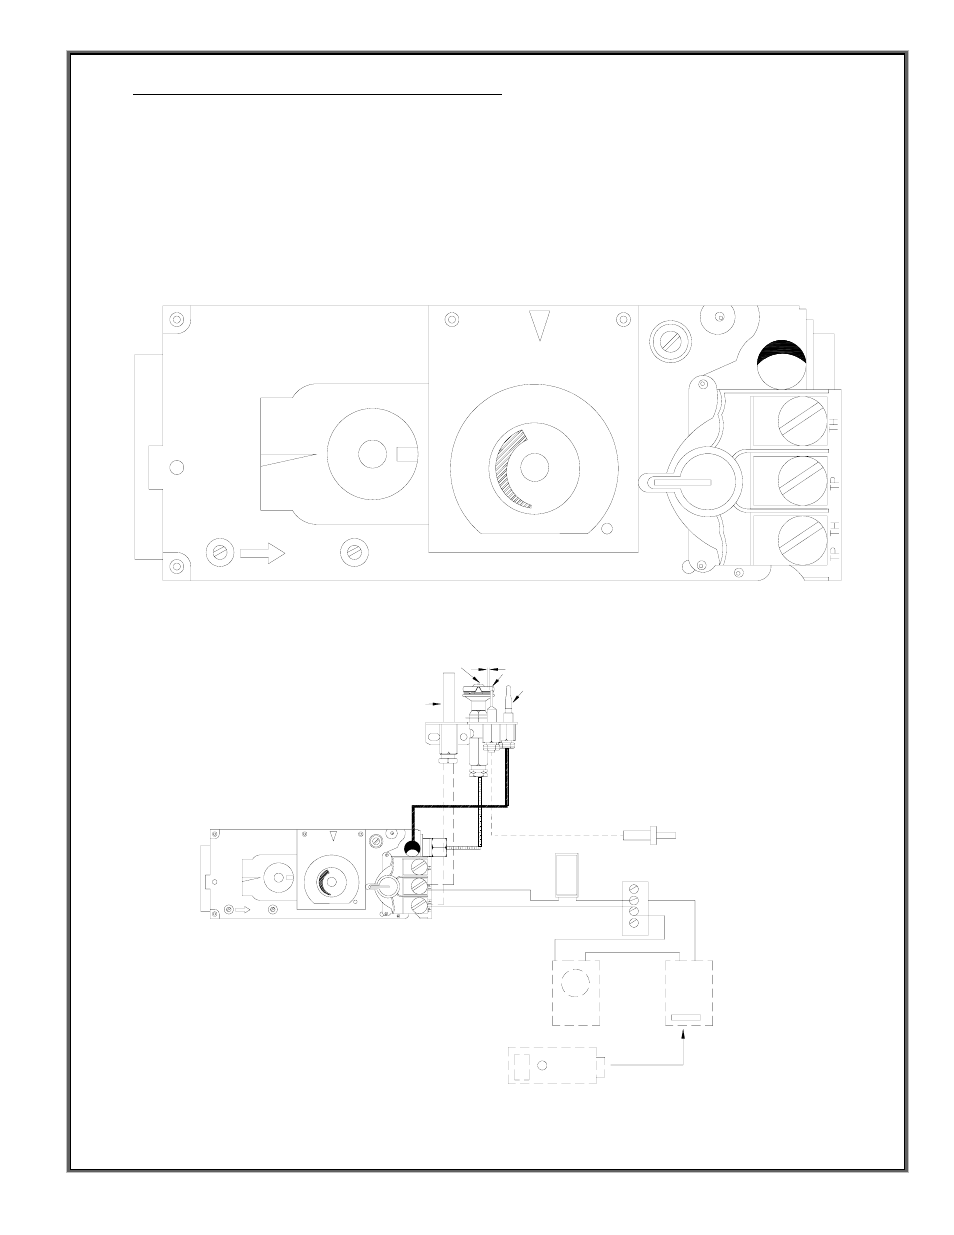 hight resolution of sit 820 nova mv gas control valve on off pilot hi lo version 1 0h 40 country flame bayvue dv 30 user manual page 41 48